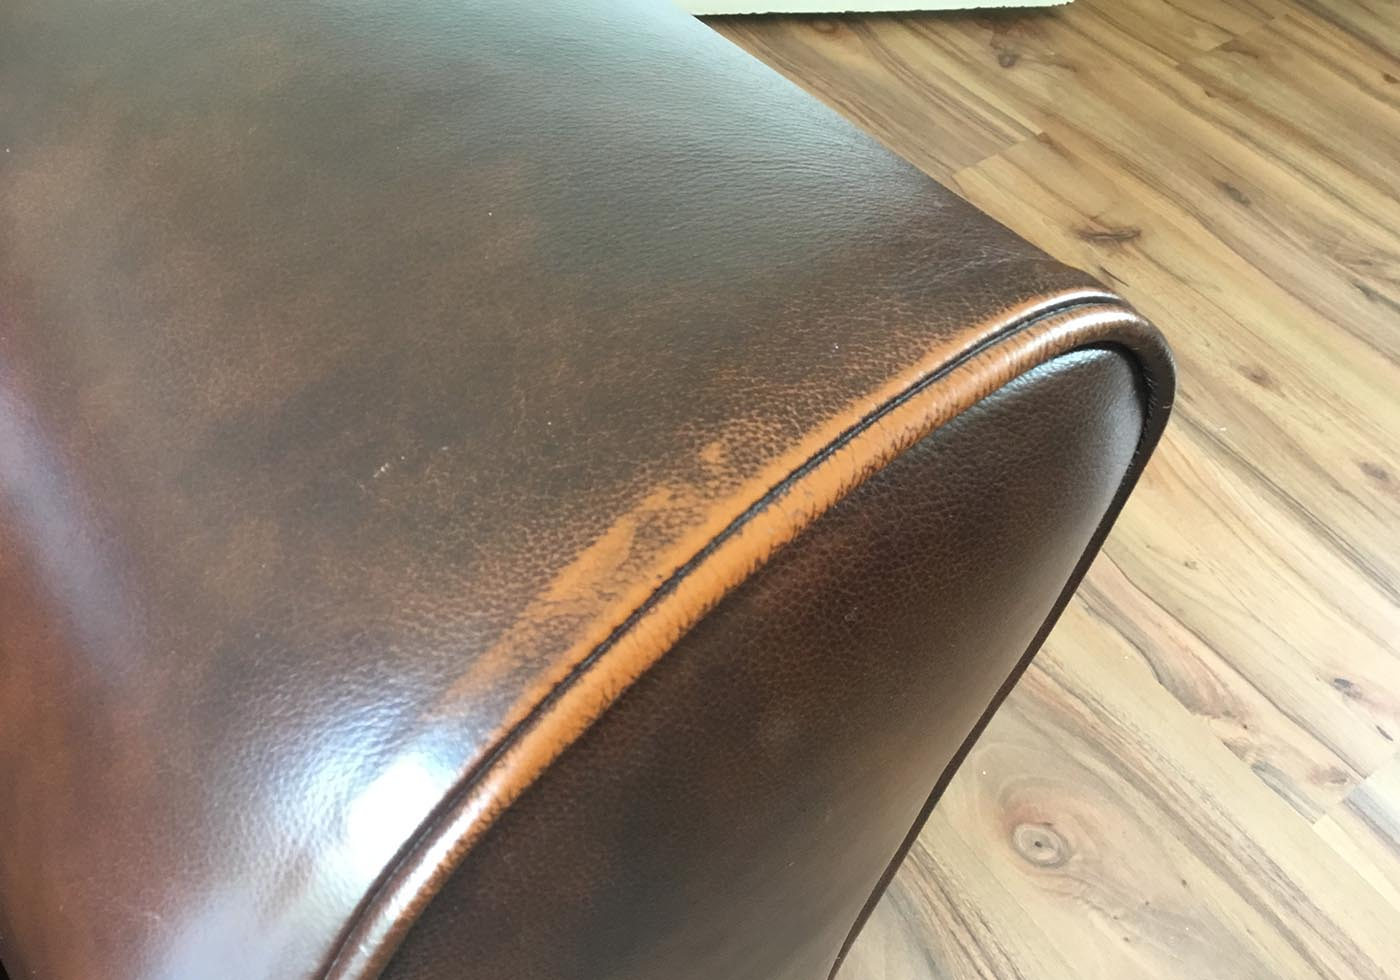 worn leather sofa arm